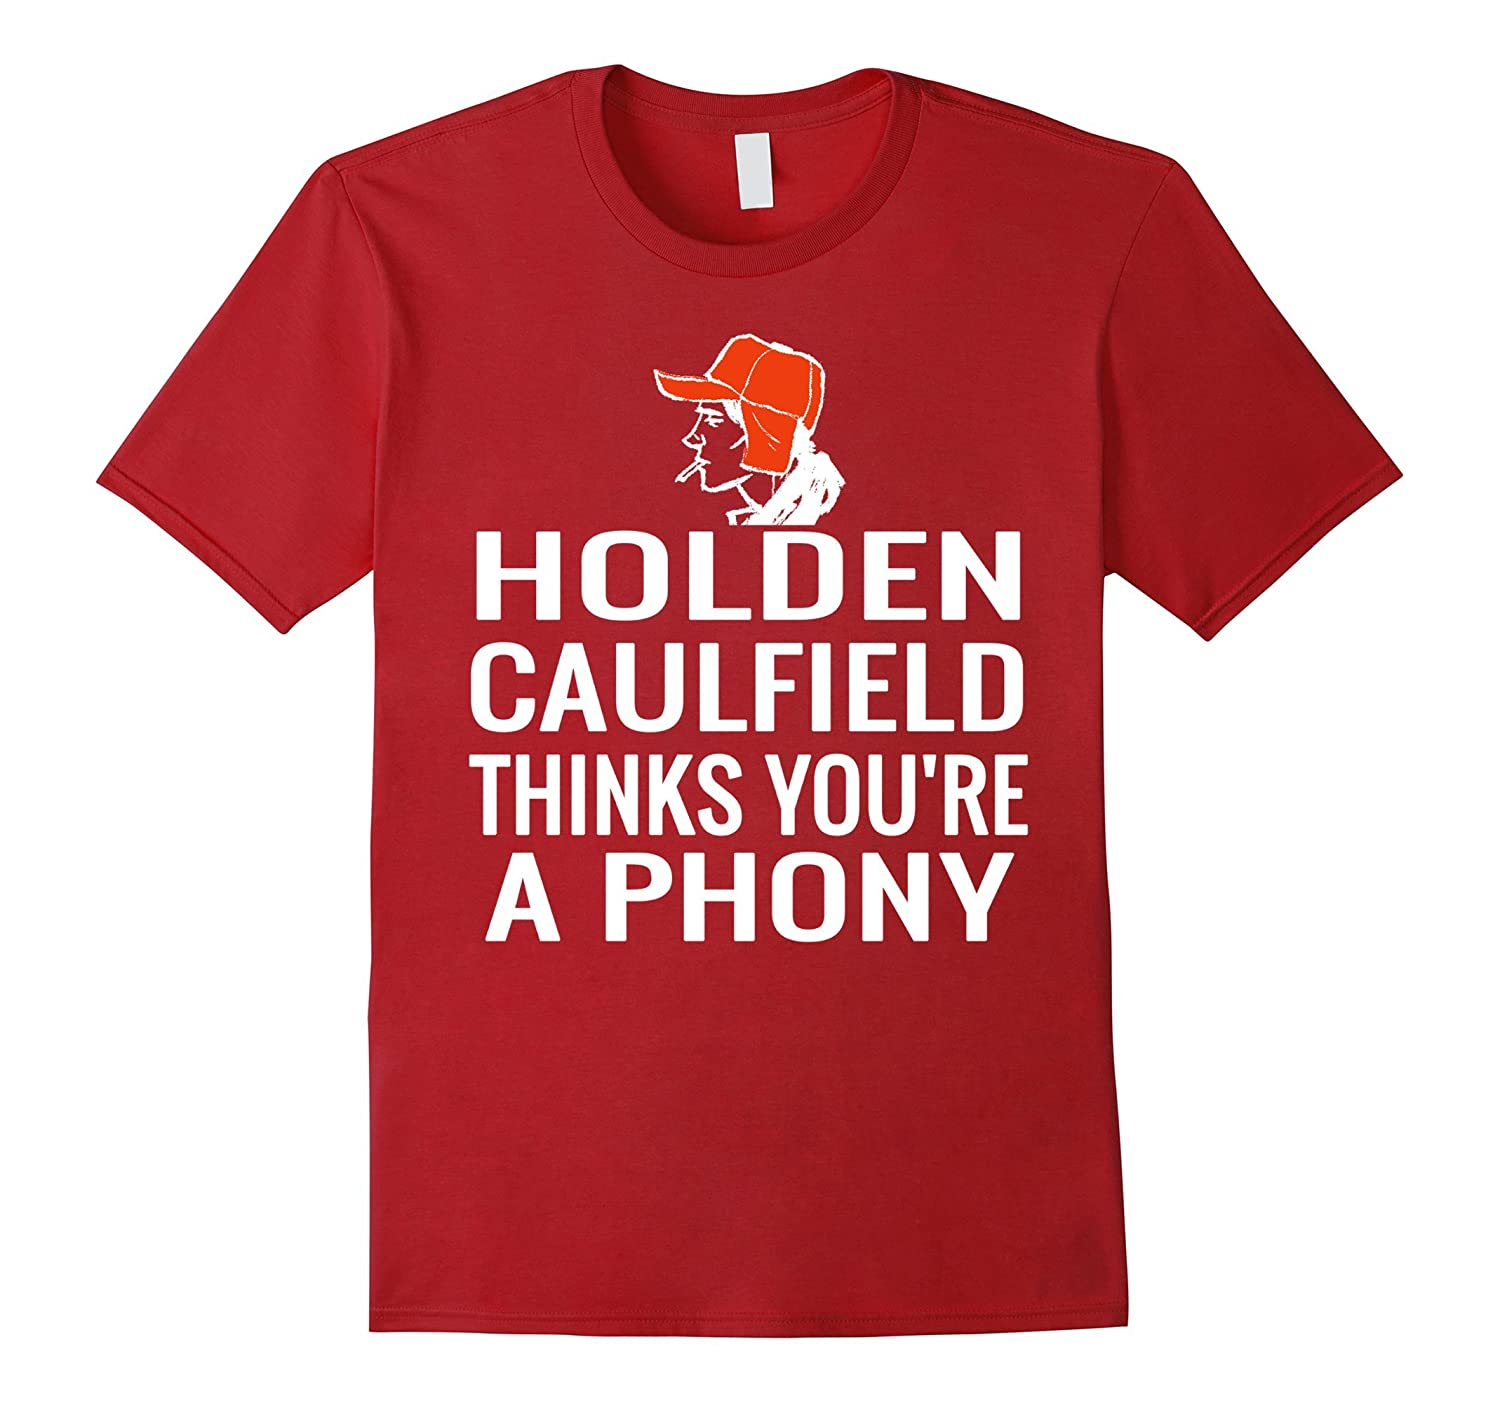 holden caulfield thinks youre a phony t shirts goatstee